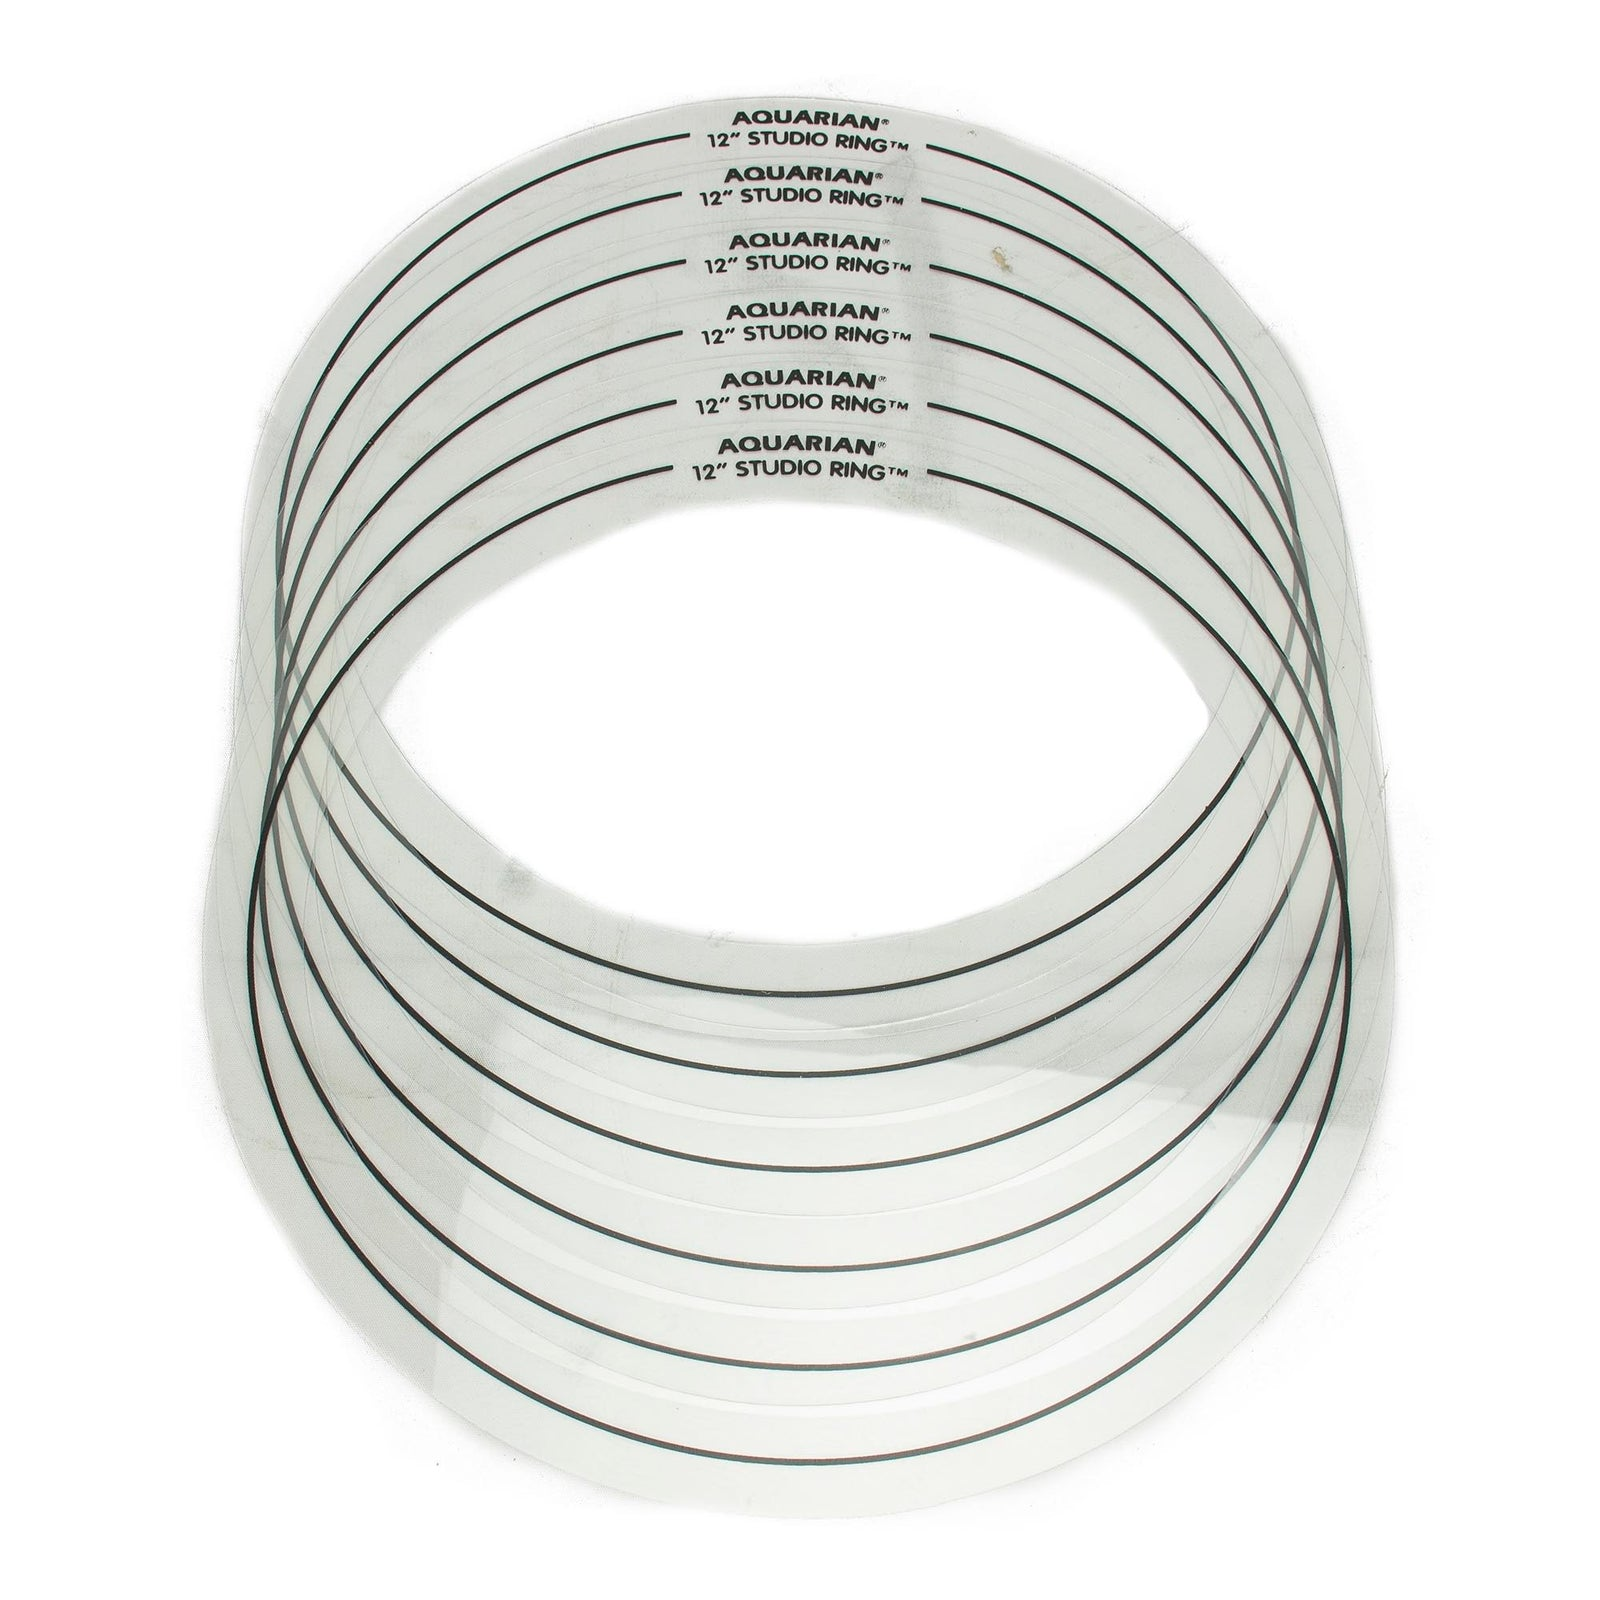 "Aquarian Studio Rings Set #8 - 12"" - Pack Of 6"